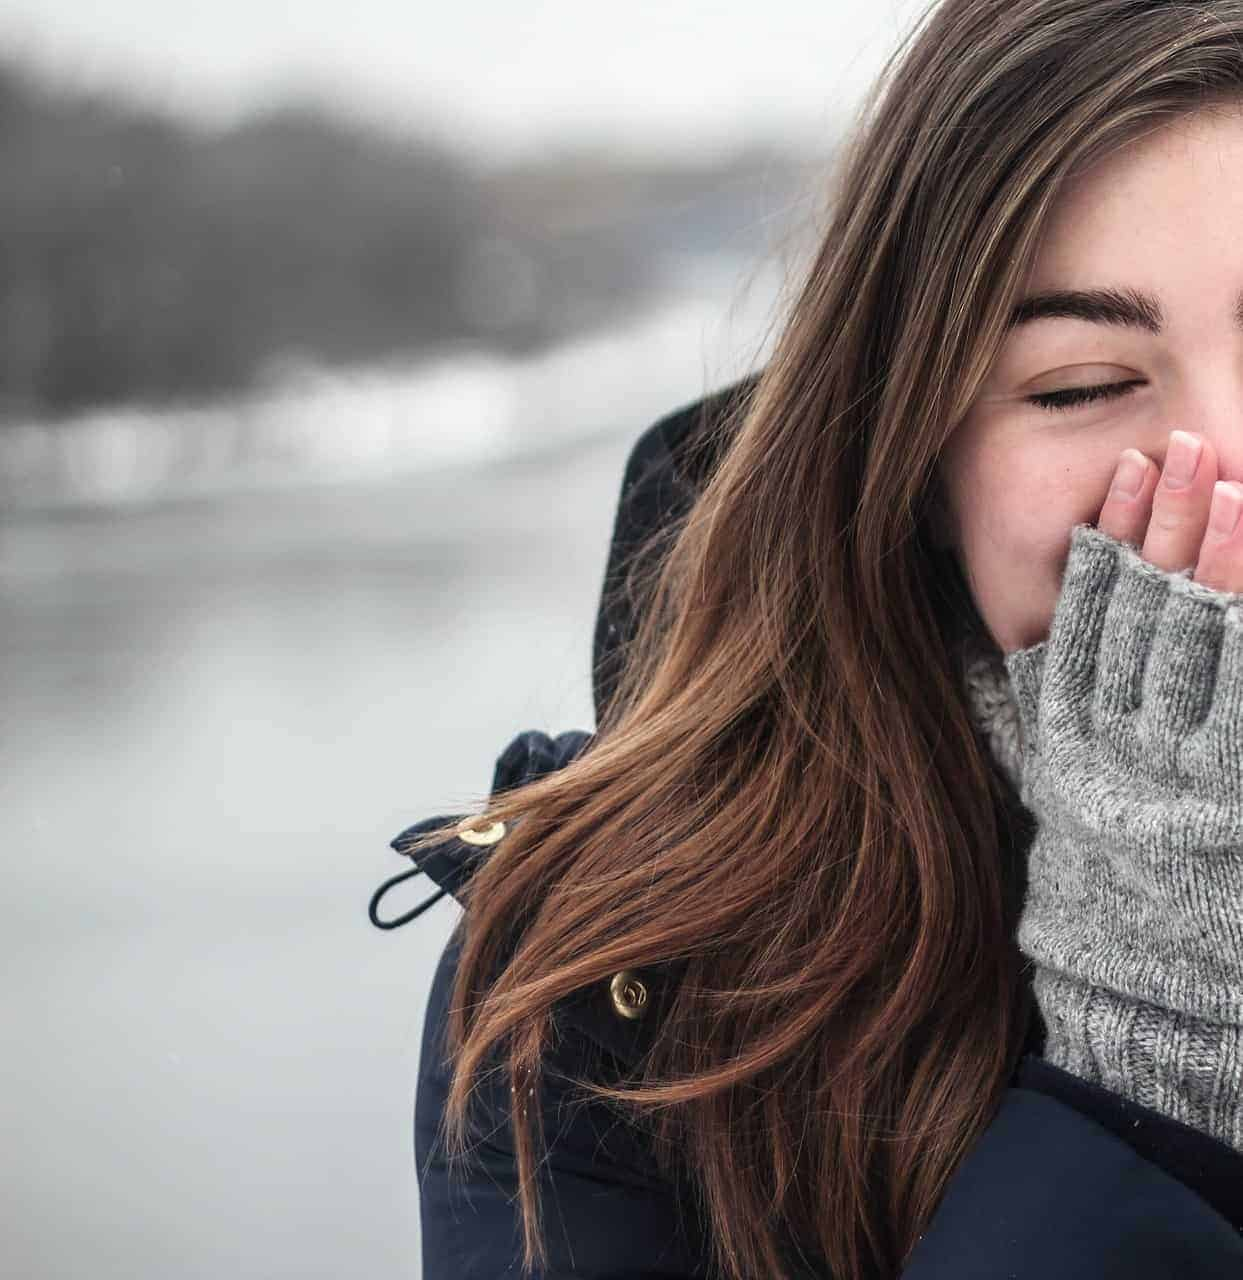 Woman at outdoor during winter